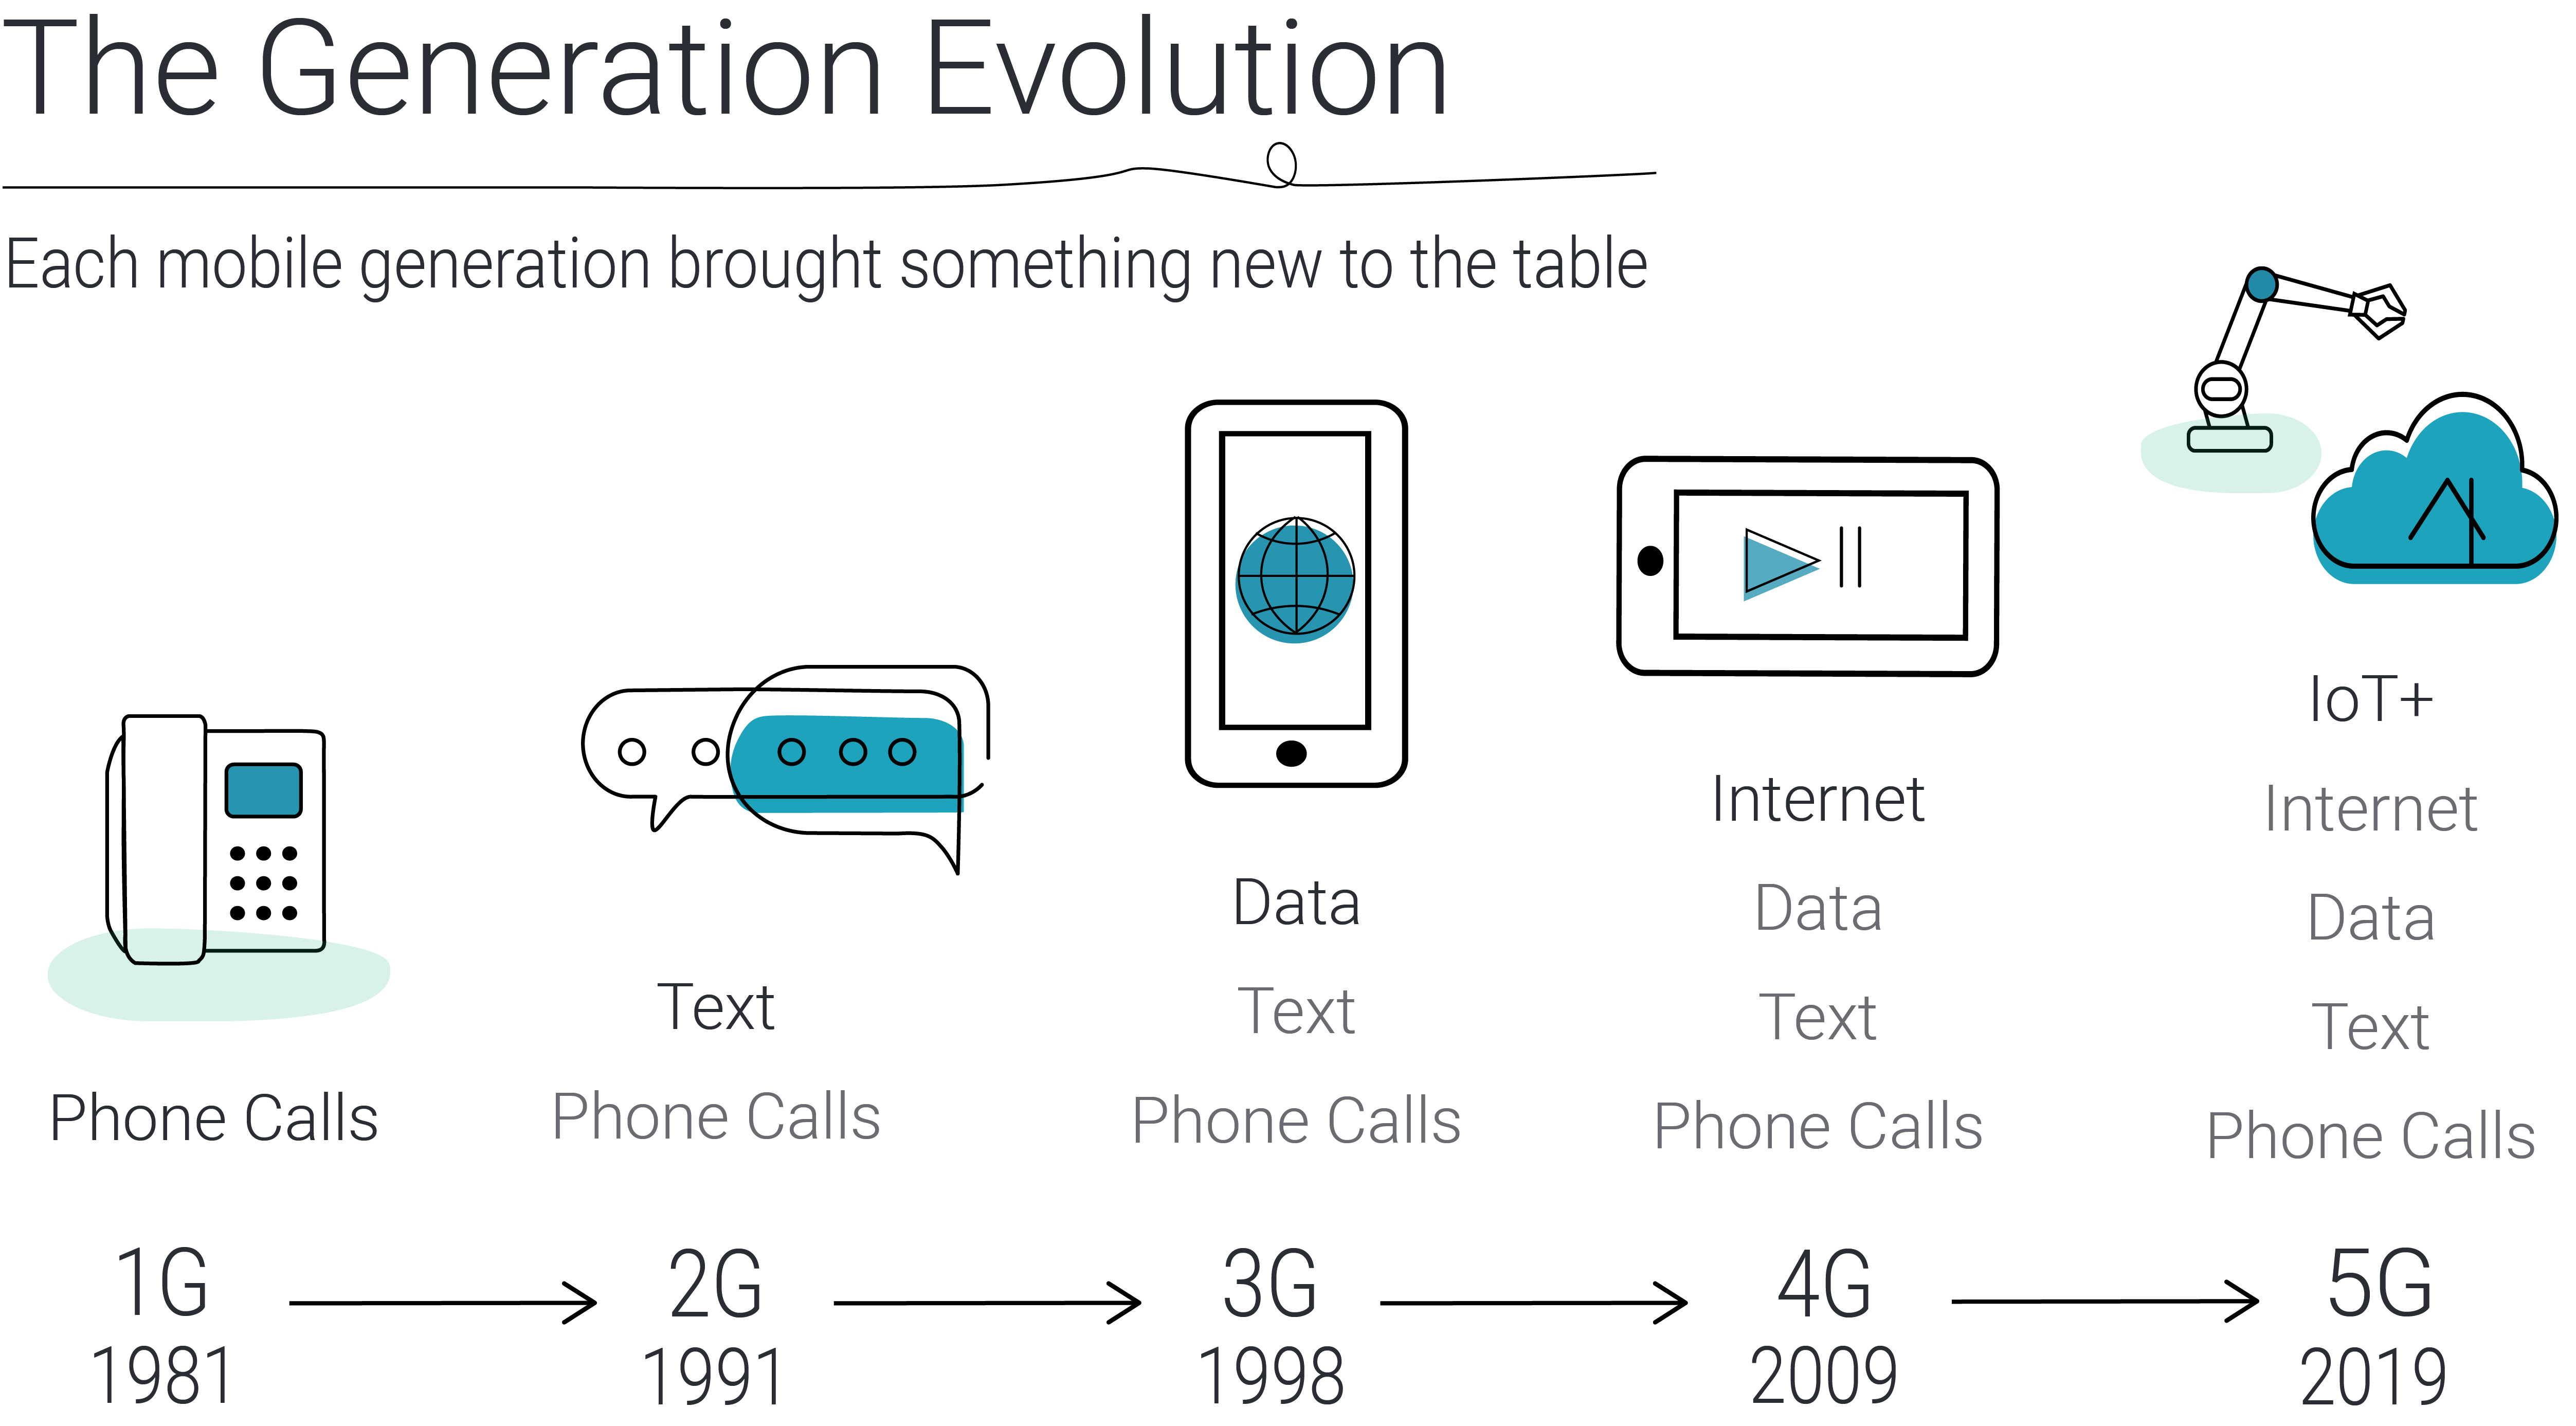 Graphic showing the difference between mobile generations 1G to 5G